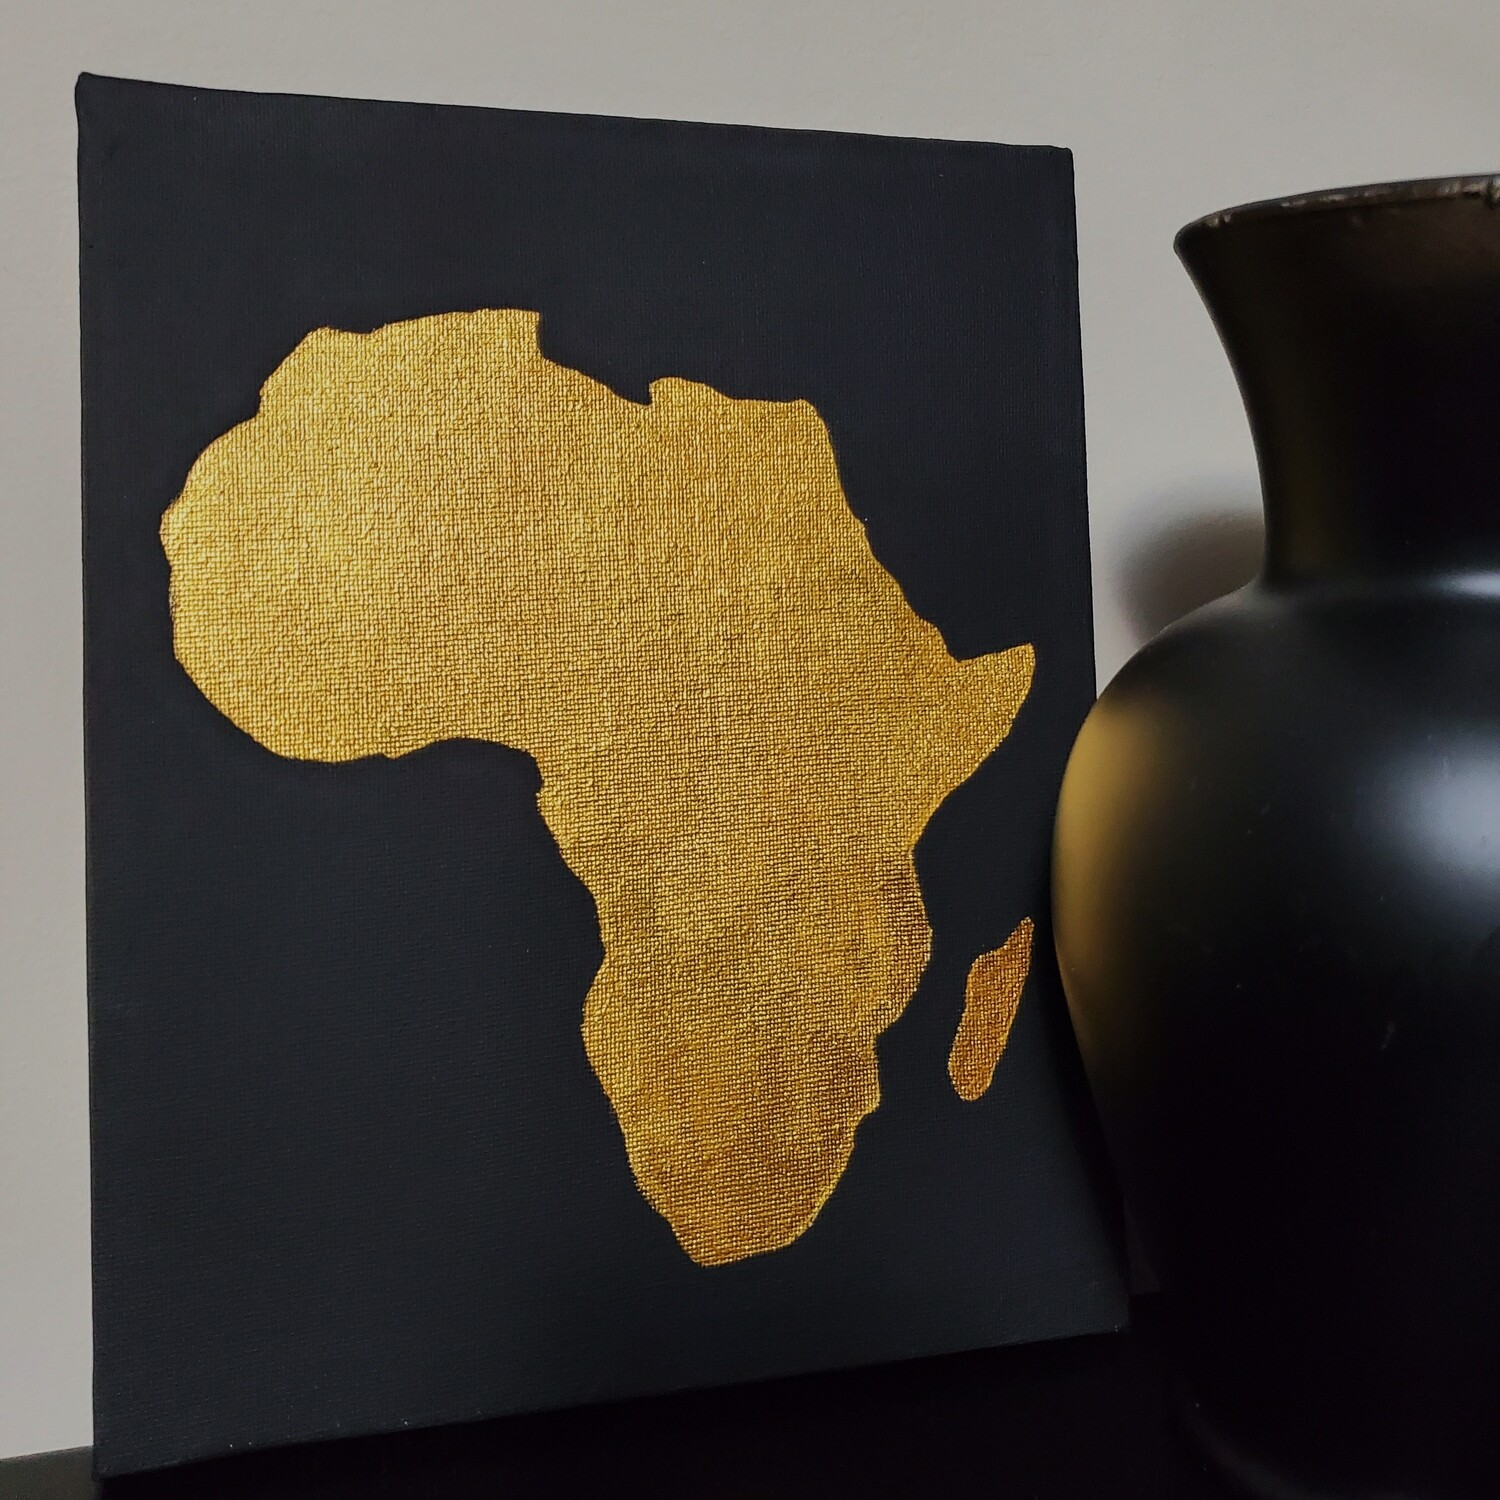 Gold Africa